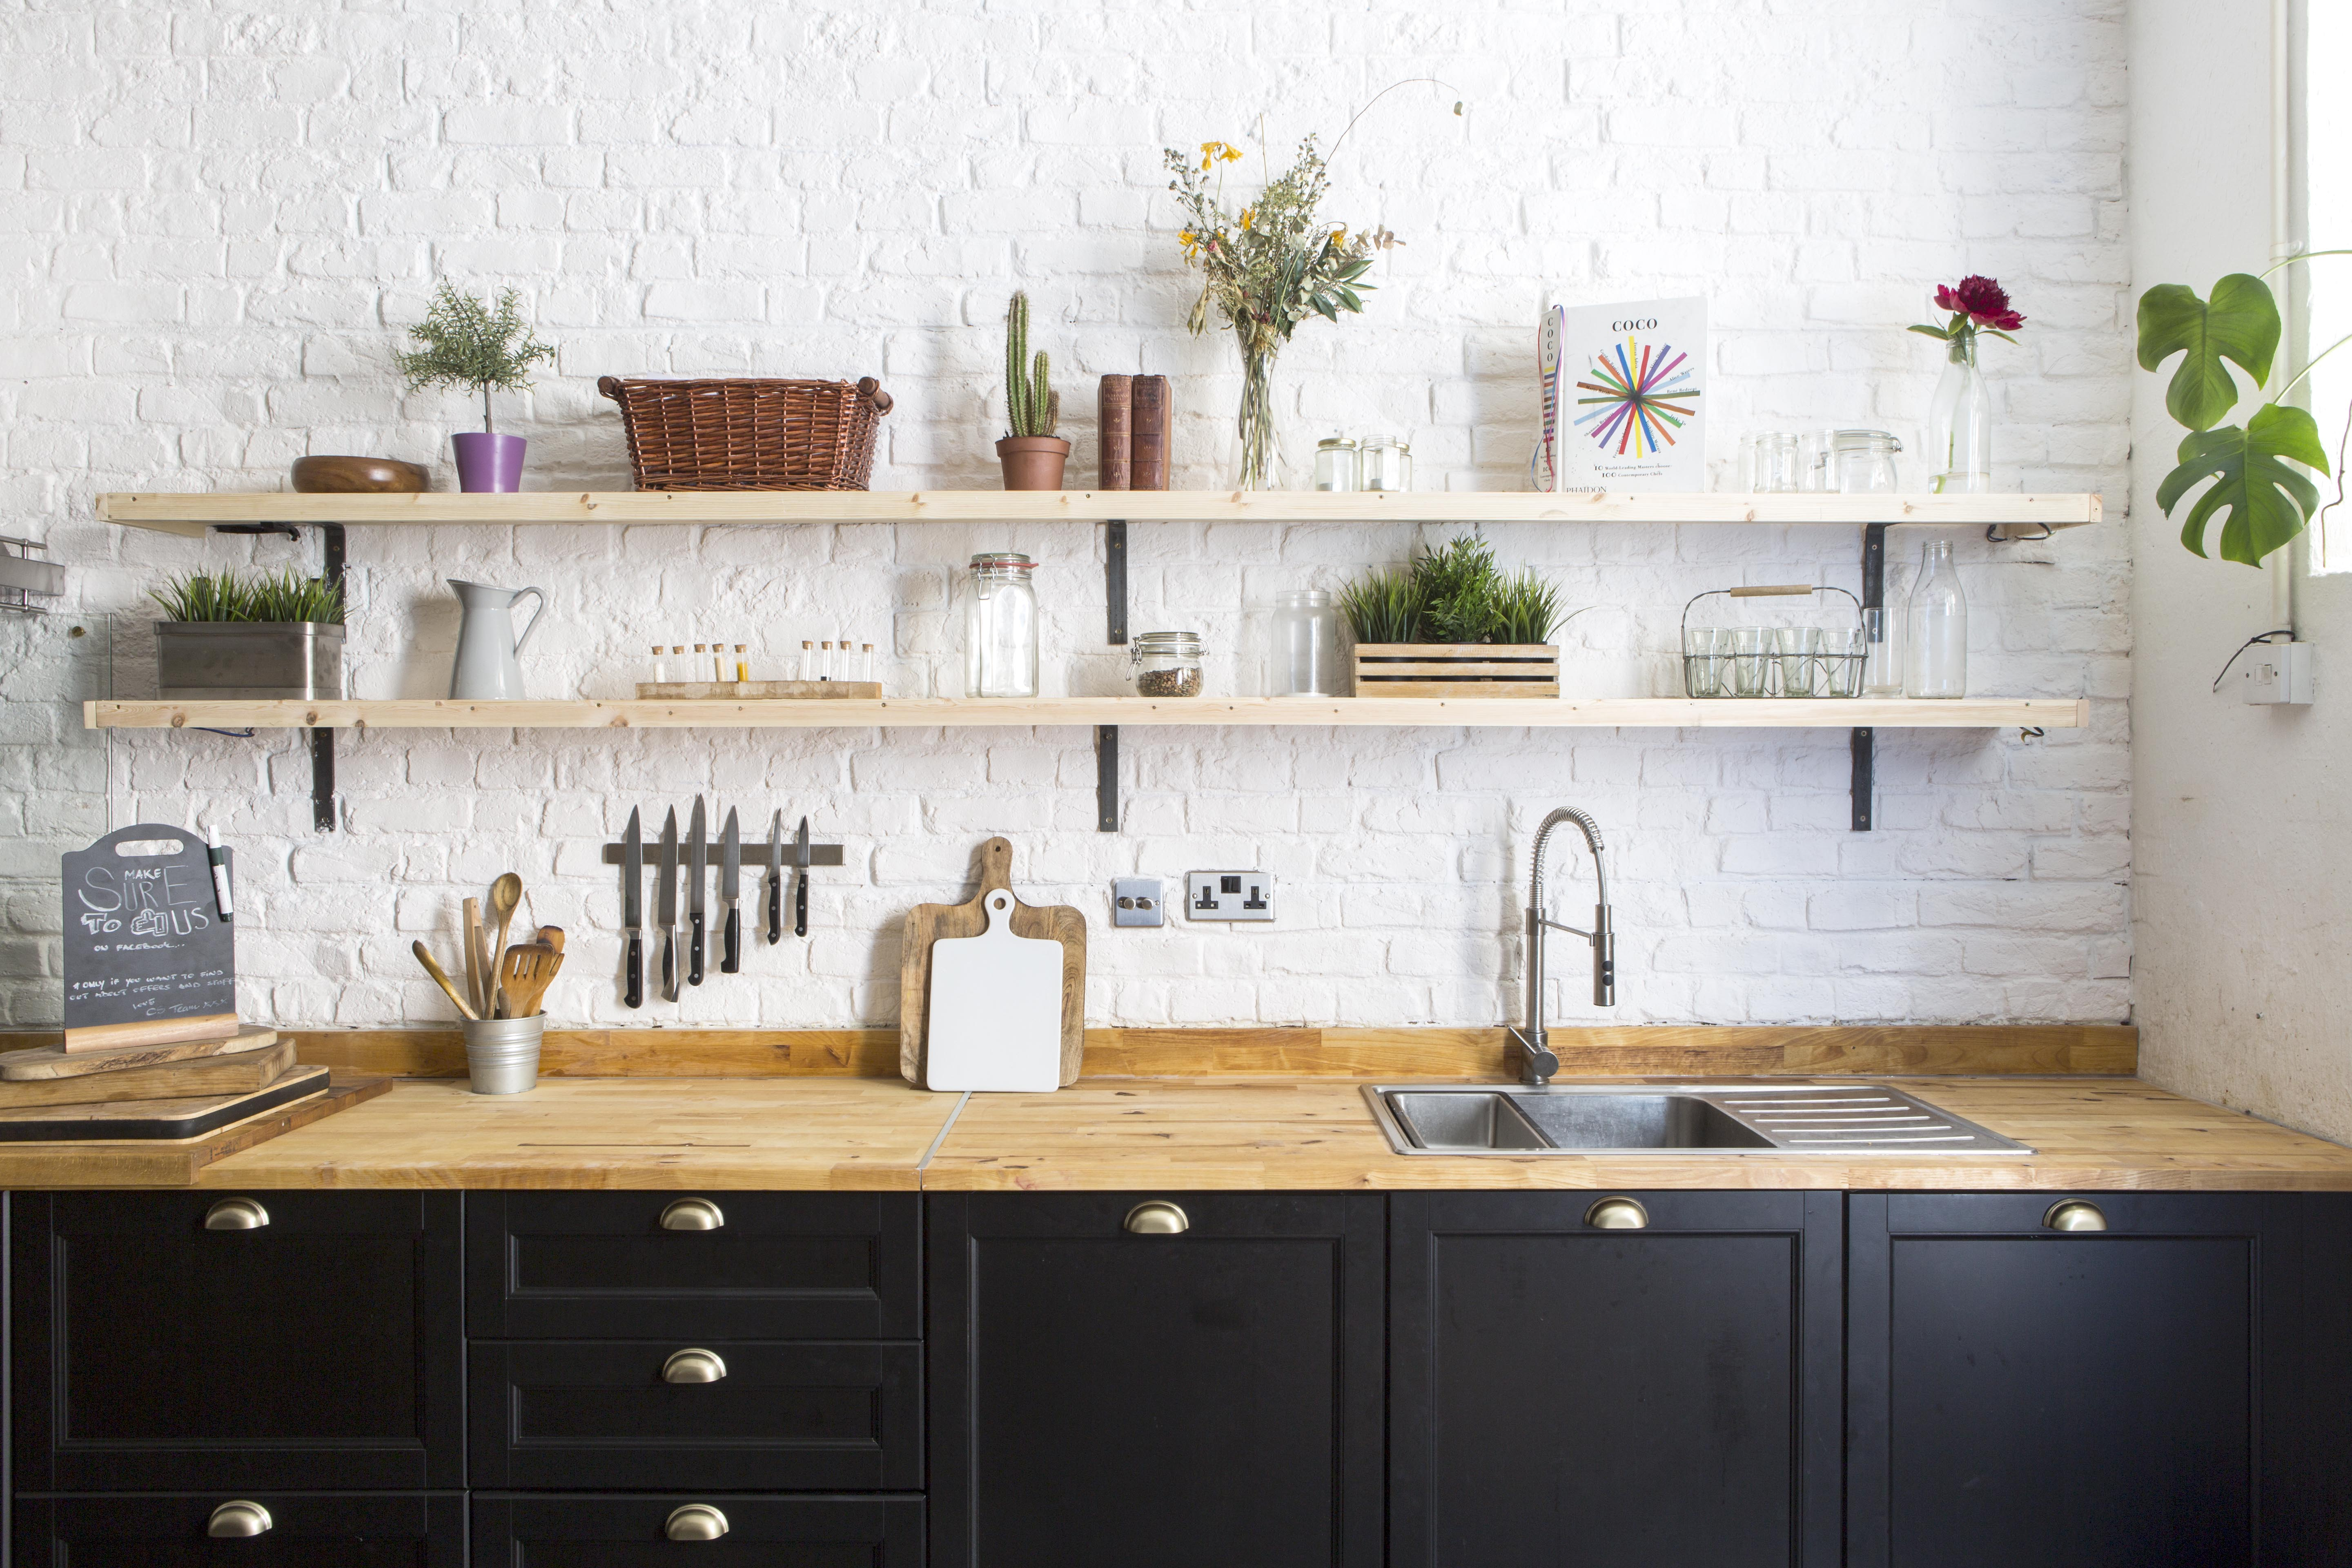 New Kitchen Design For Studio Hire Clapham Studio Hire